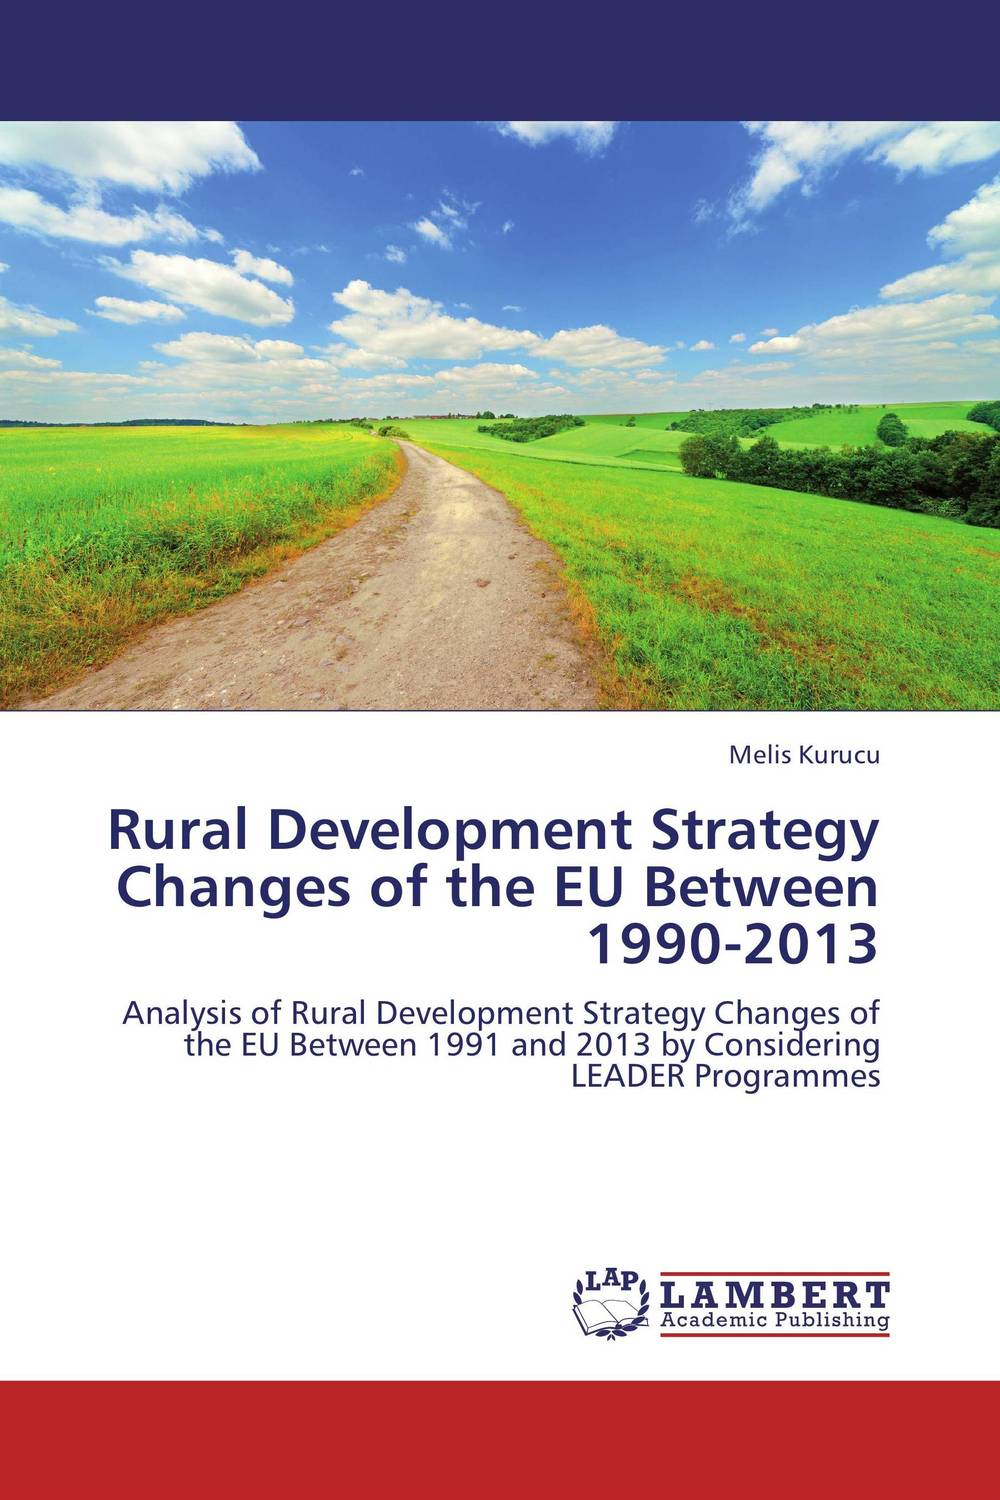 Rural Development Strategy Changes of the EU Between 1990-2013